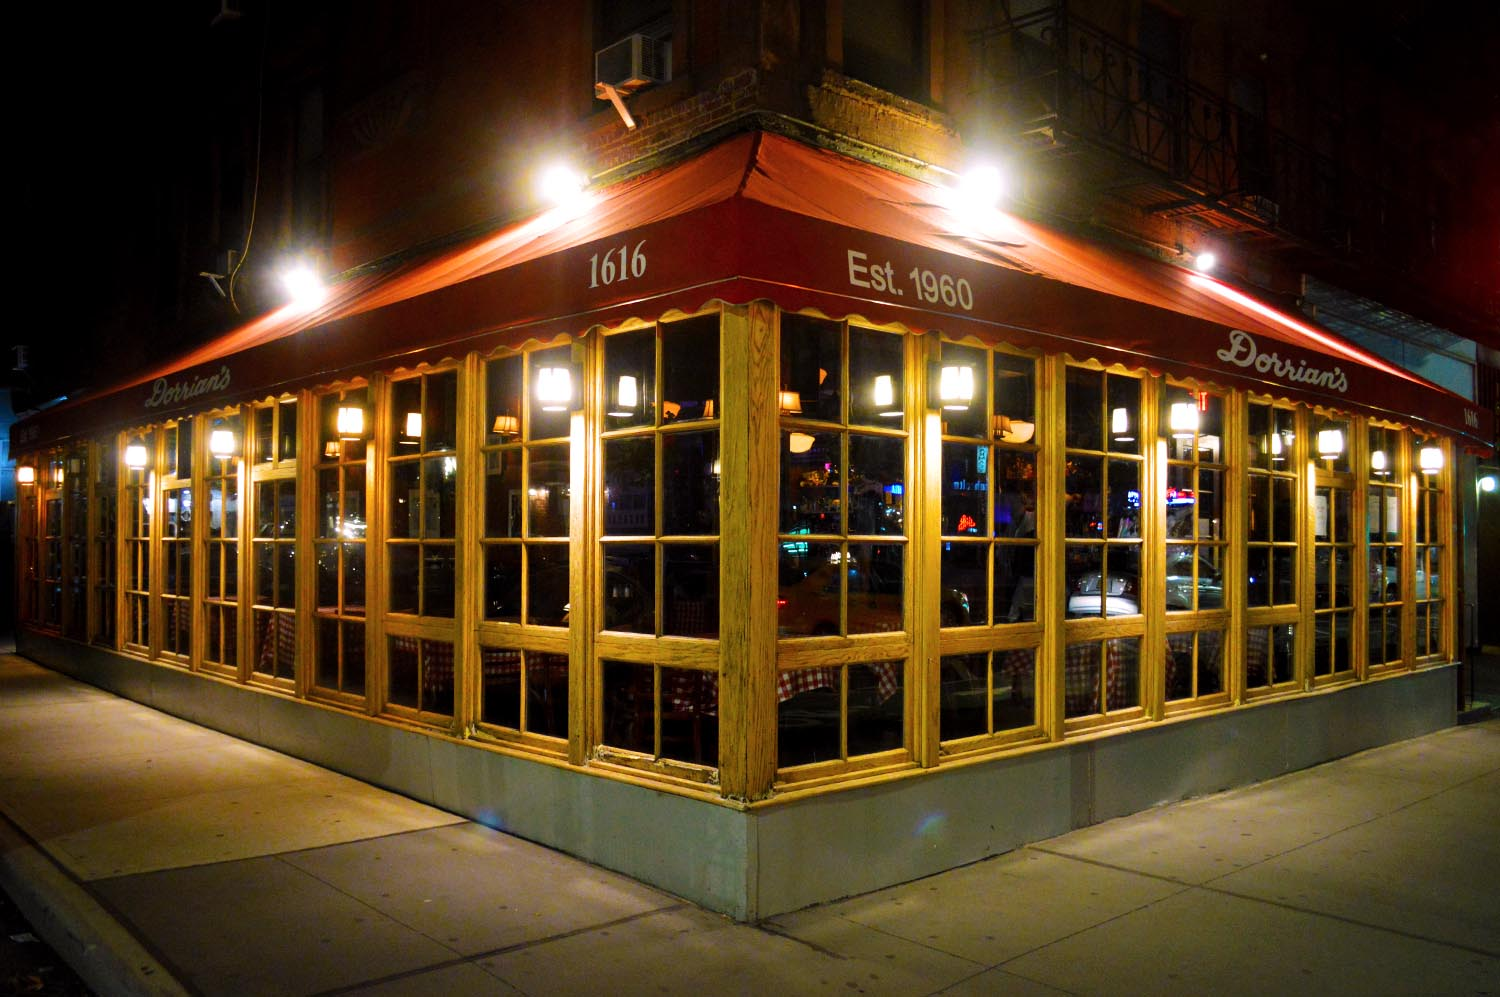 drh_nyc-2018-restaurant-exterior-night-bg-1.jpg